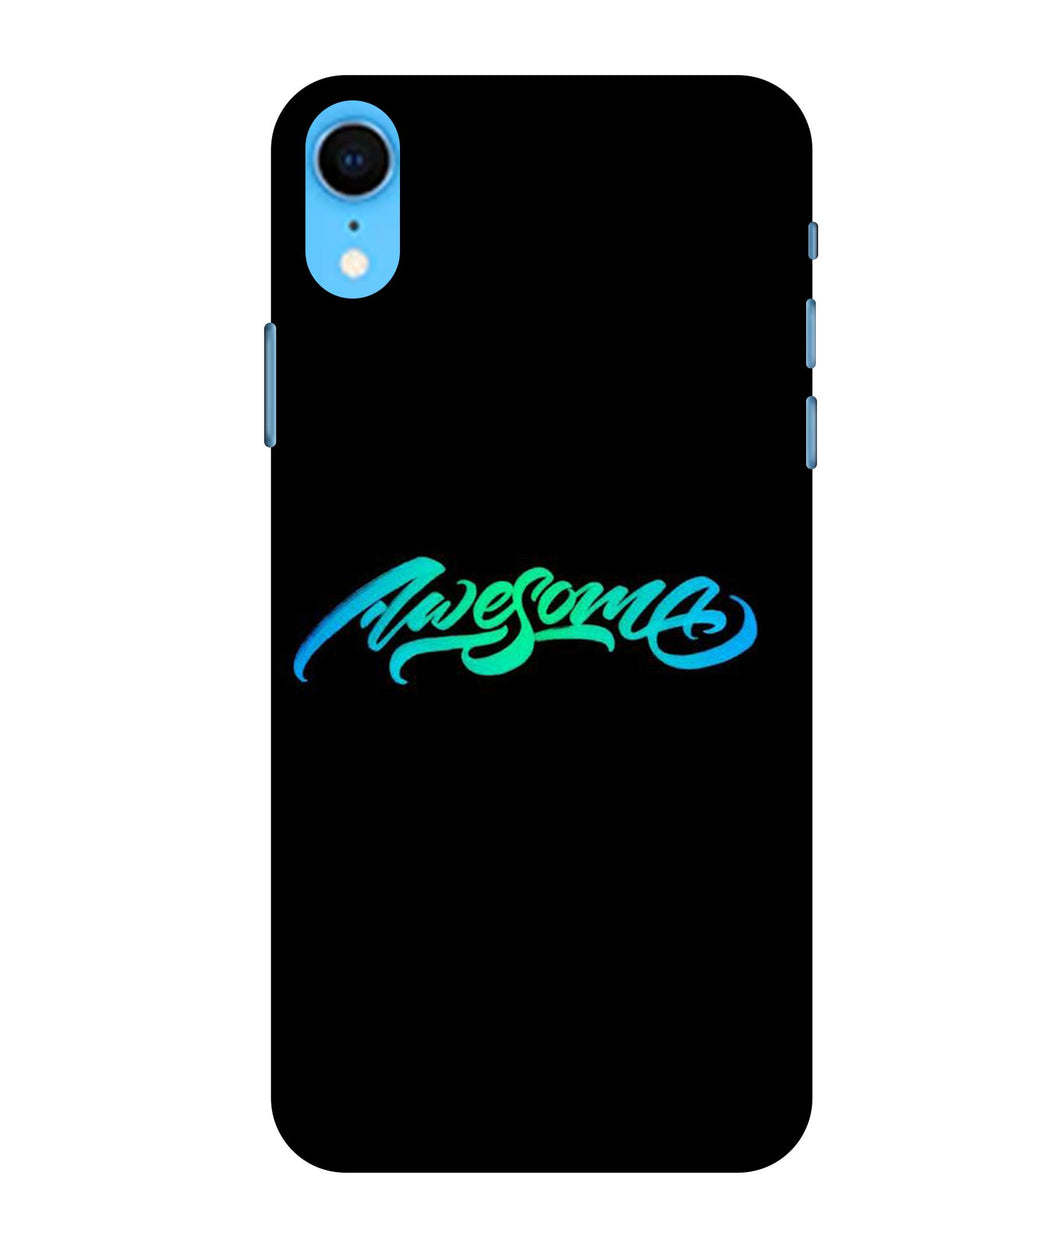 Apple Iphone XR Awesome mobile cover